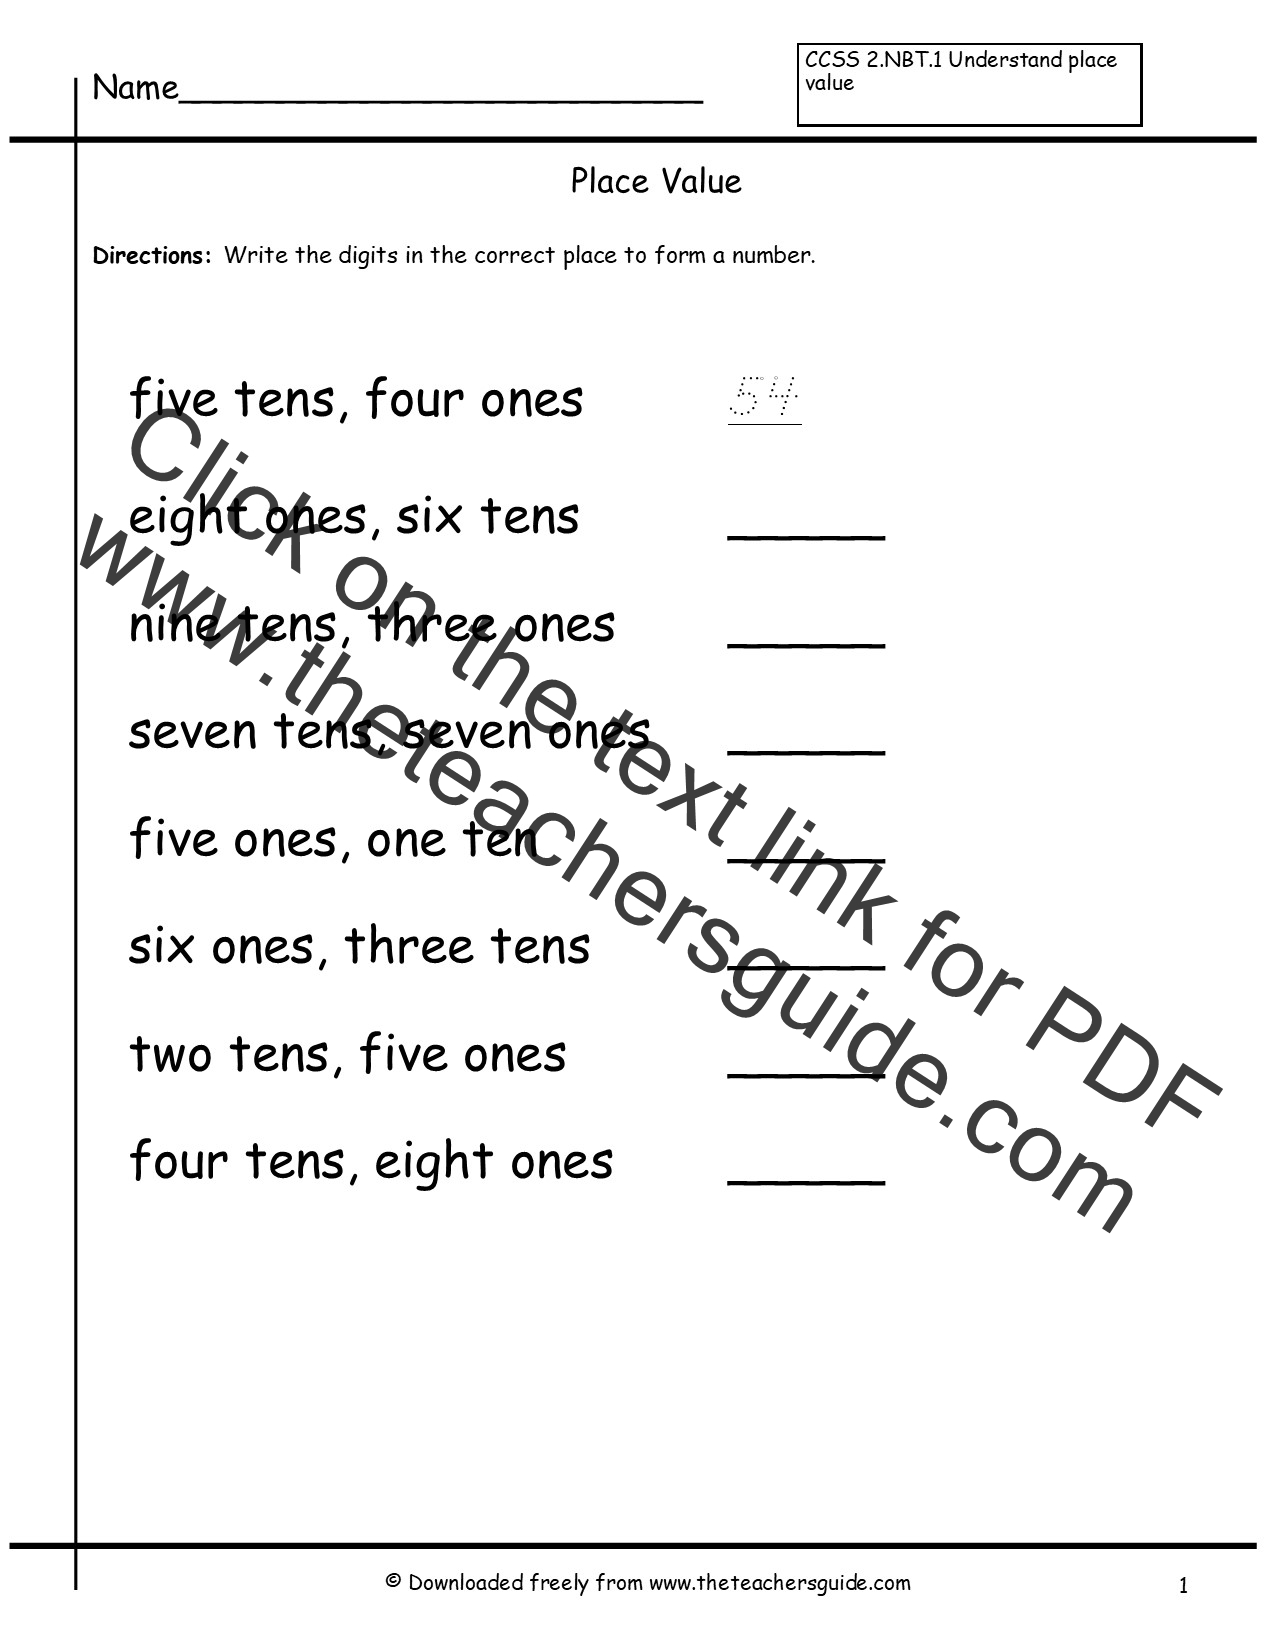 Place Value Worksheets from The Teachers Guide – Kindergarten Place Value Worksheets